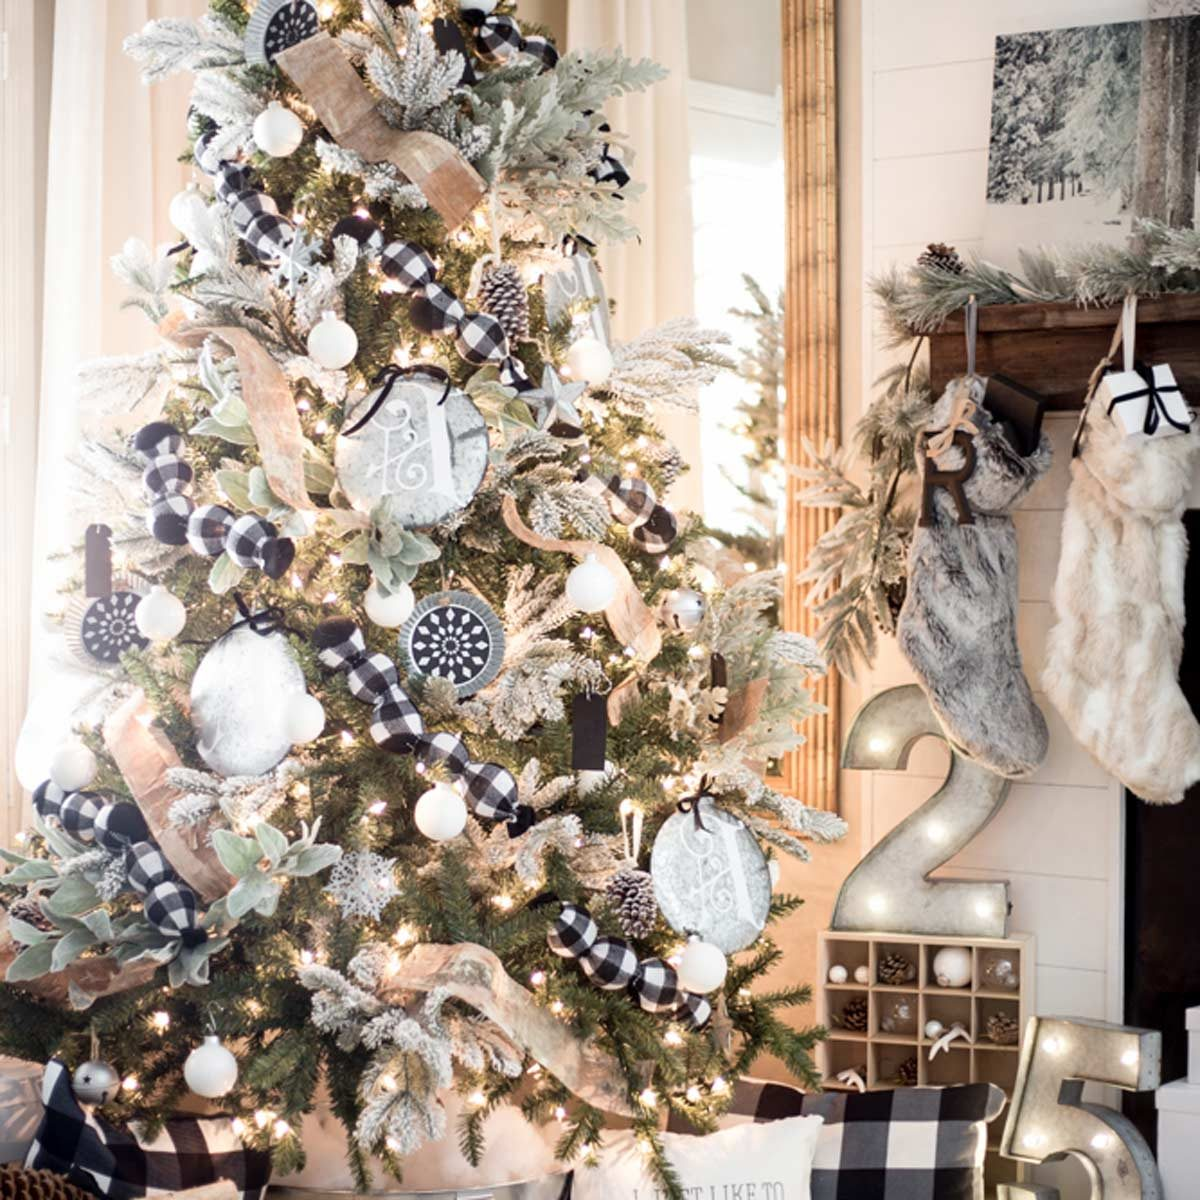 Christmas Tree Design Ideas: Frosty Christmas